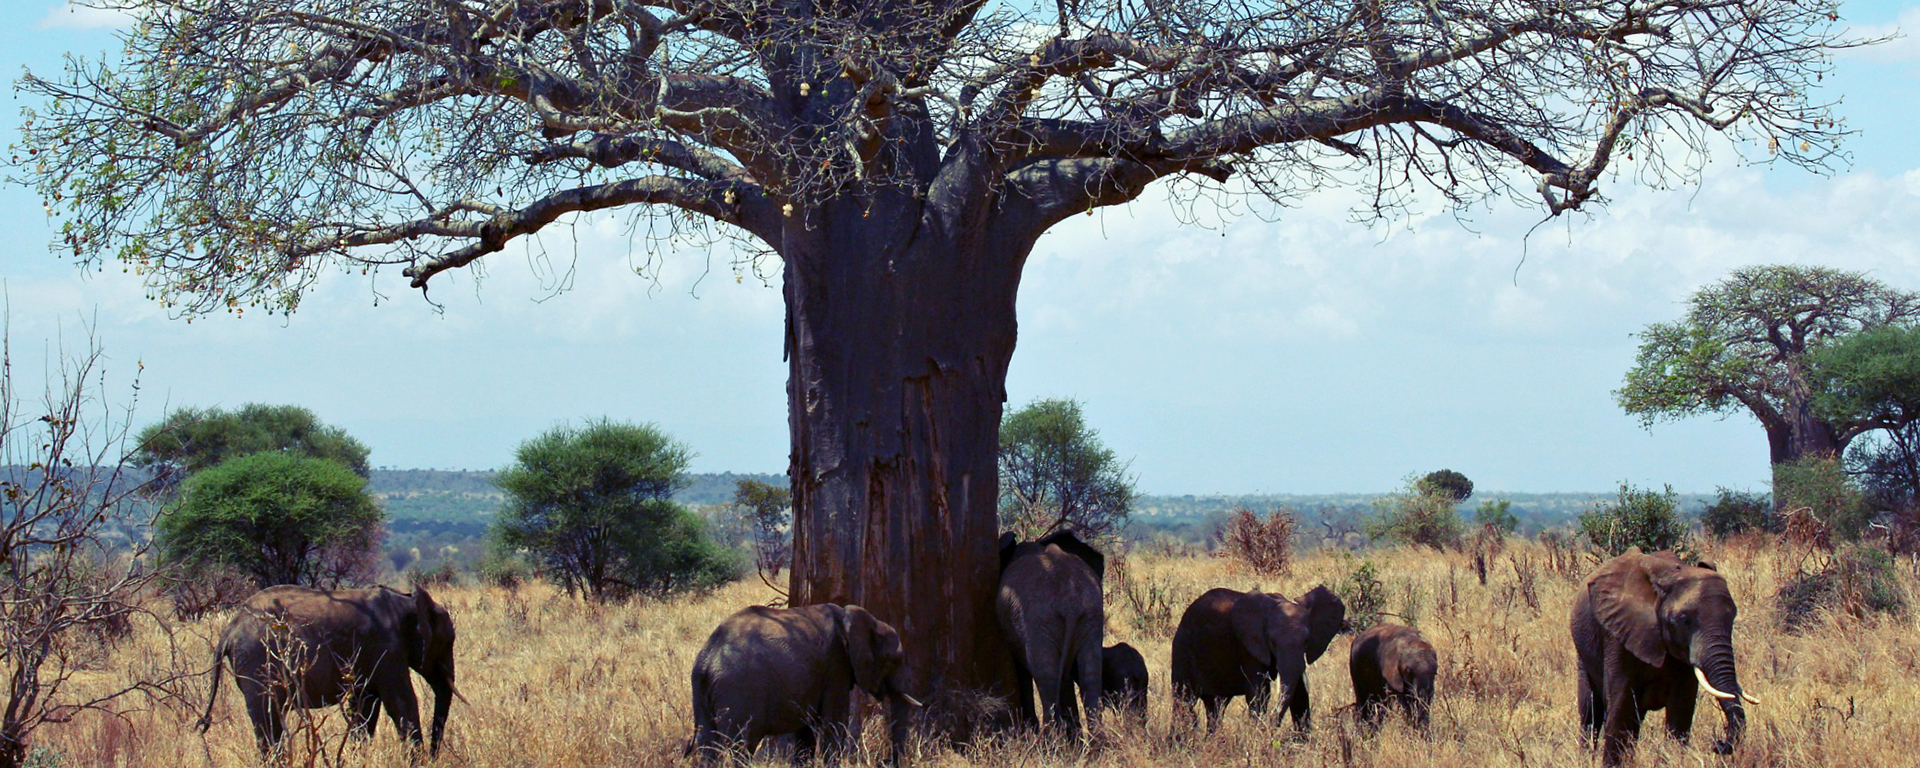 Elephants having a good scratch at this baobab tree (also known as 'The Tree of Life' in Africa) in Tarangire.